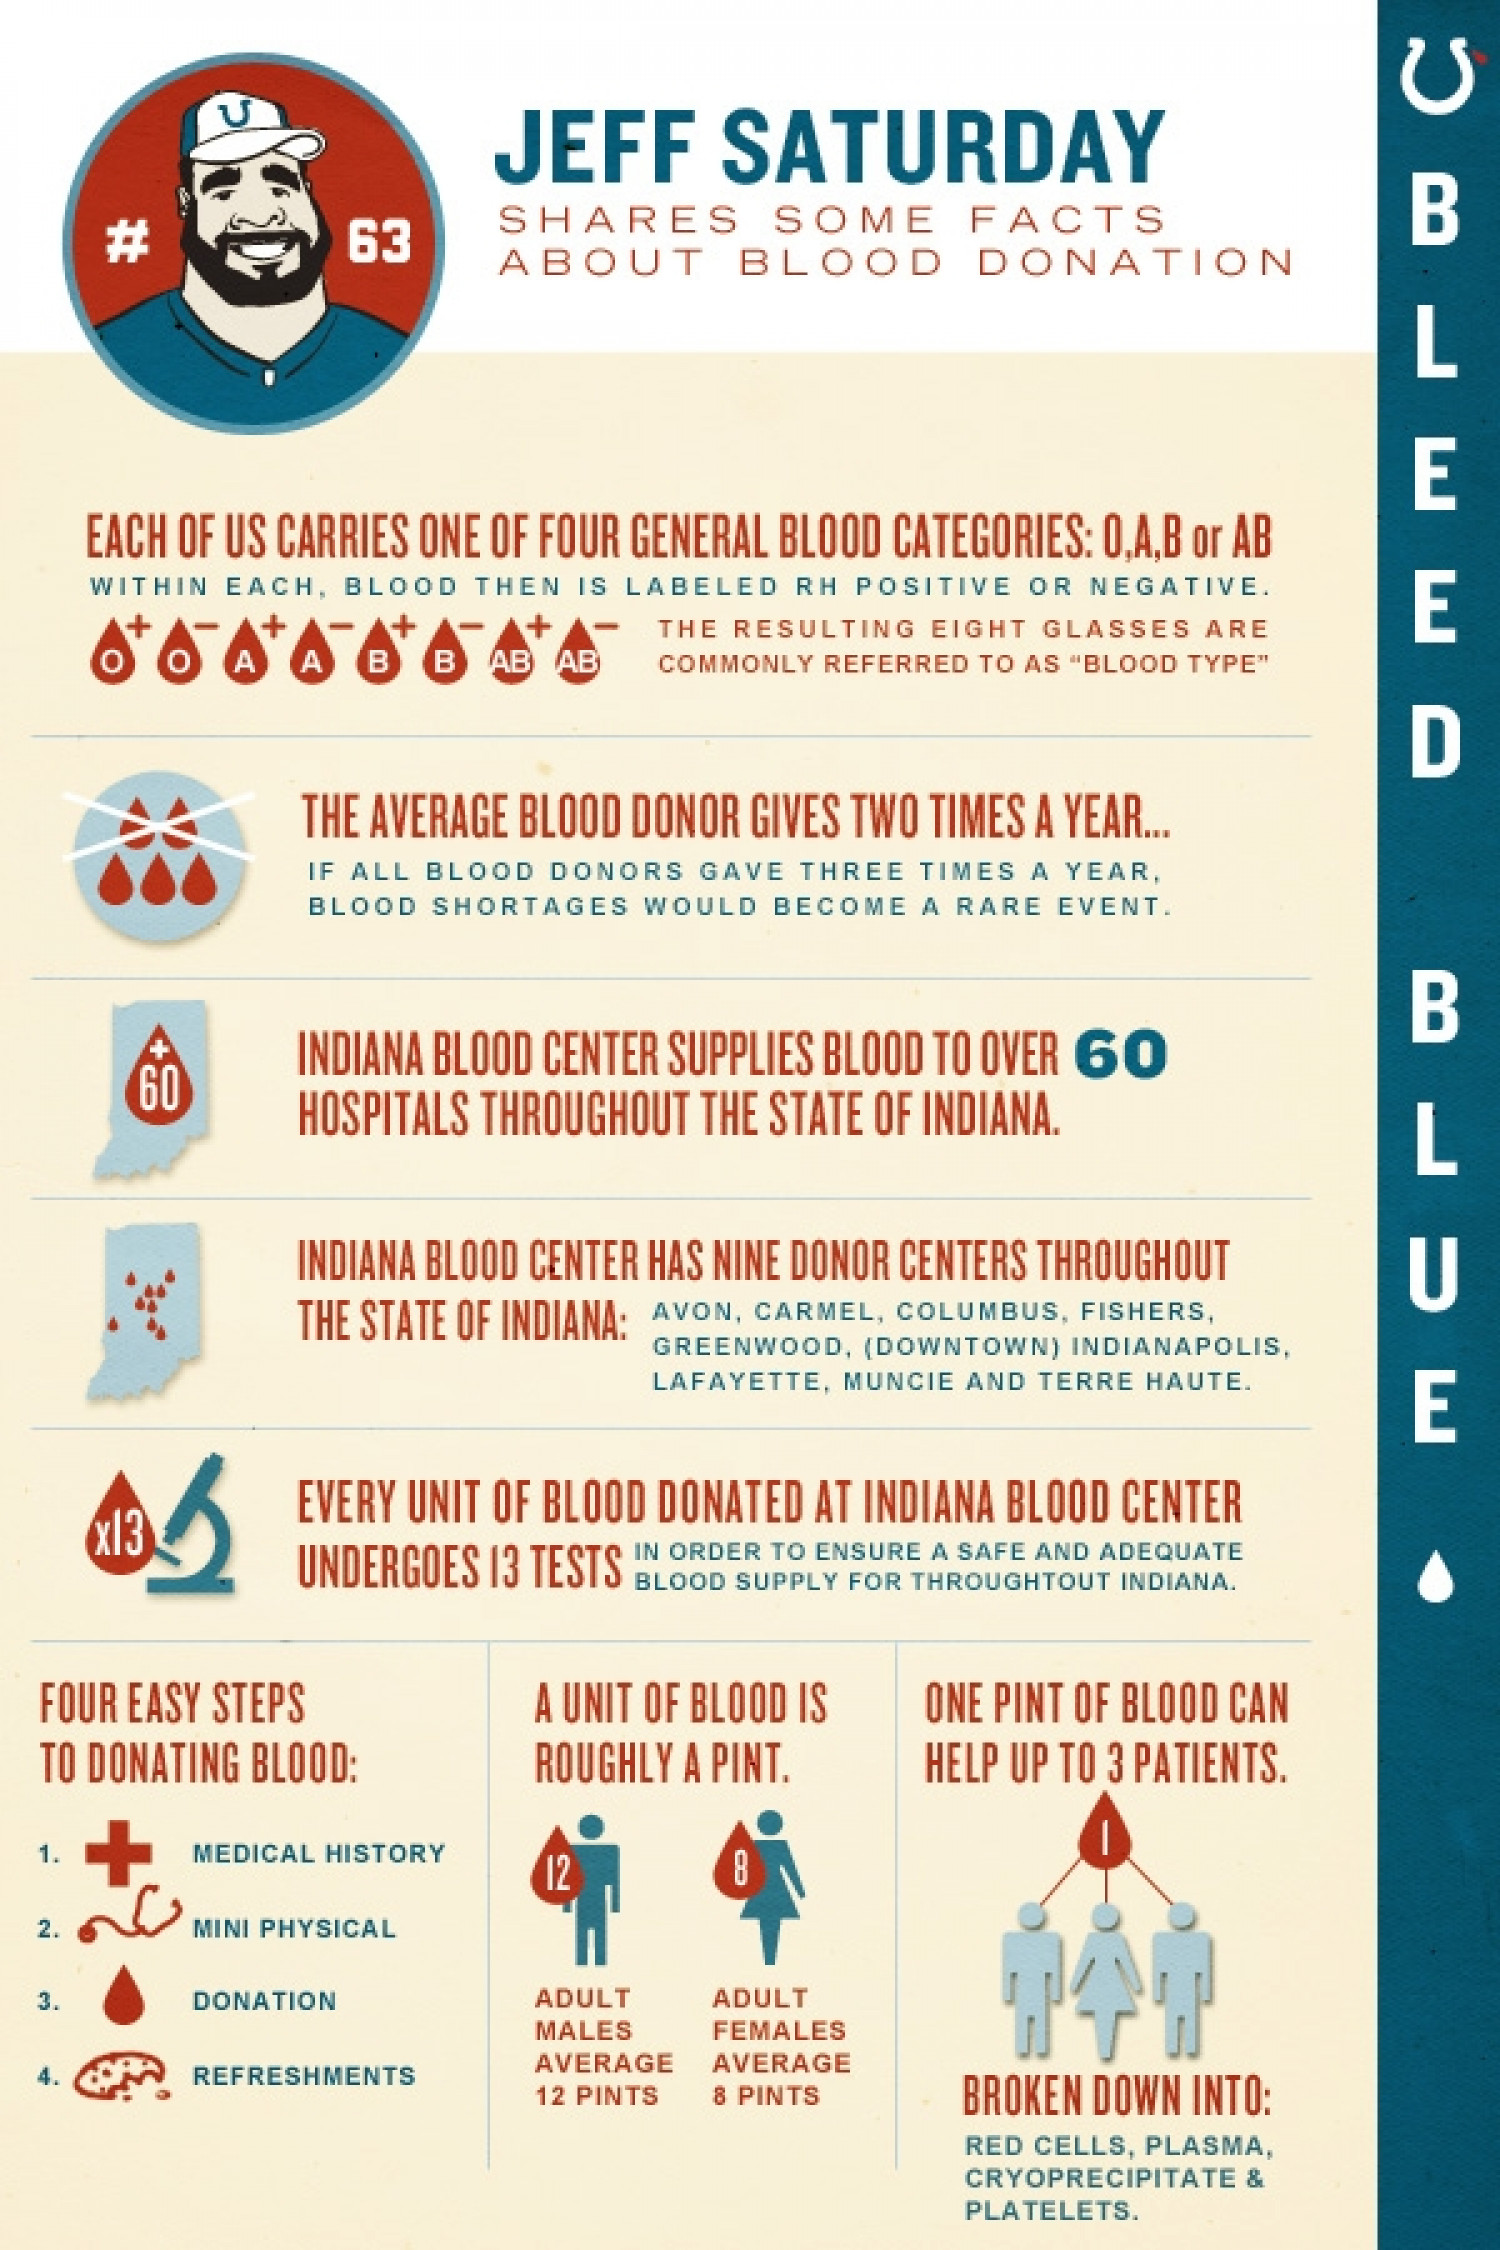 Jeff Saturday Shares Some Facts About Blood Donation Infographic